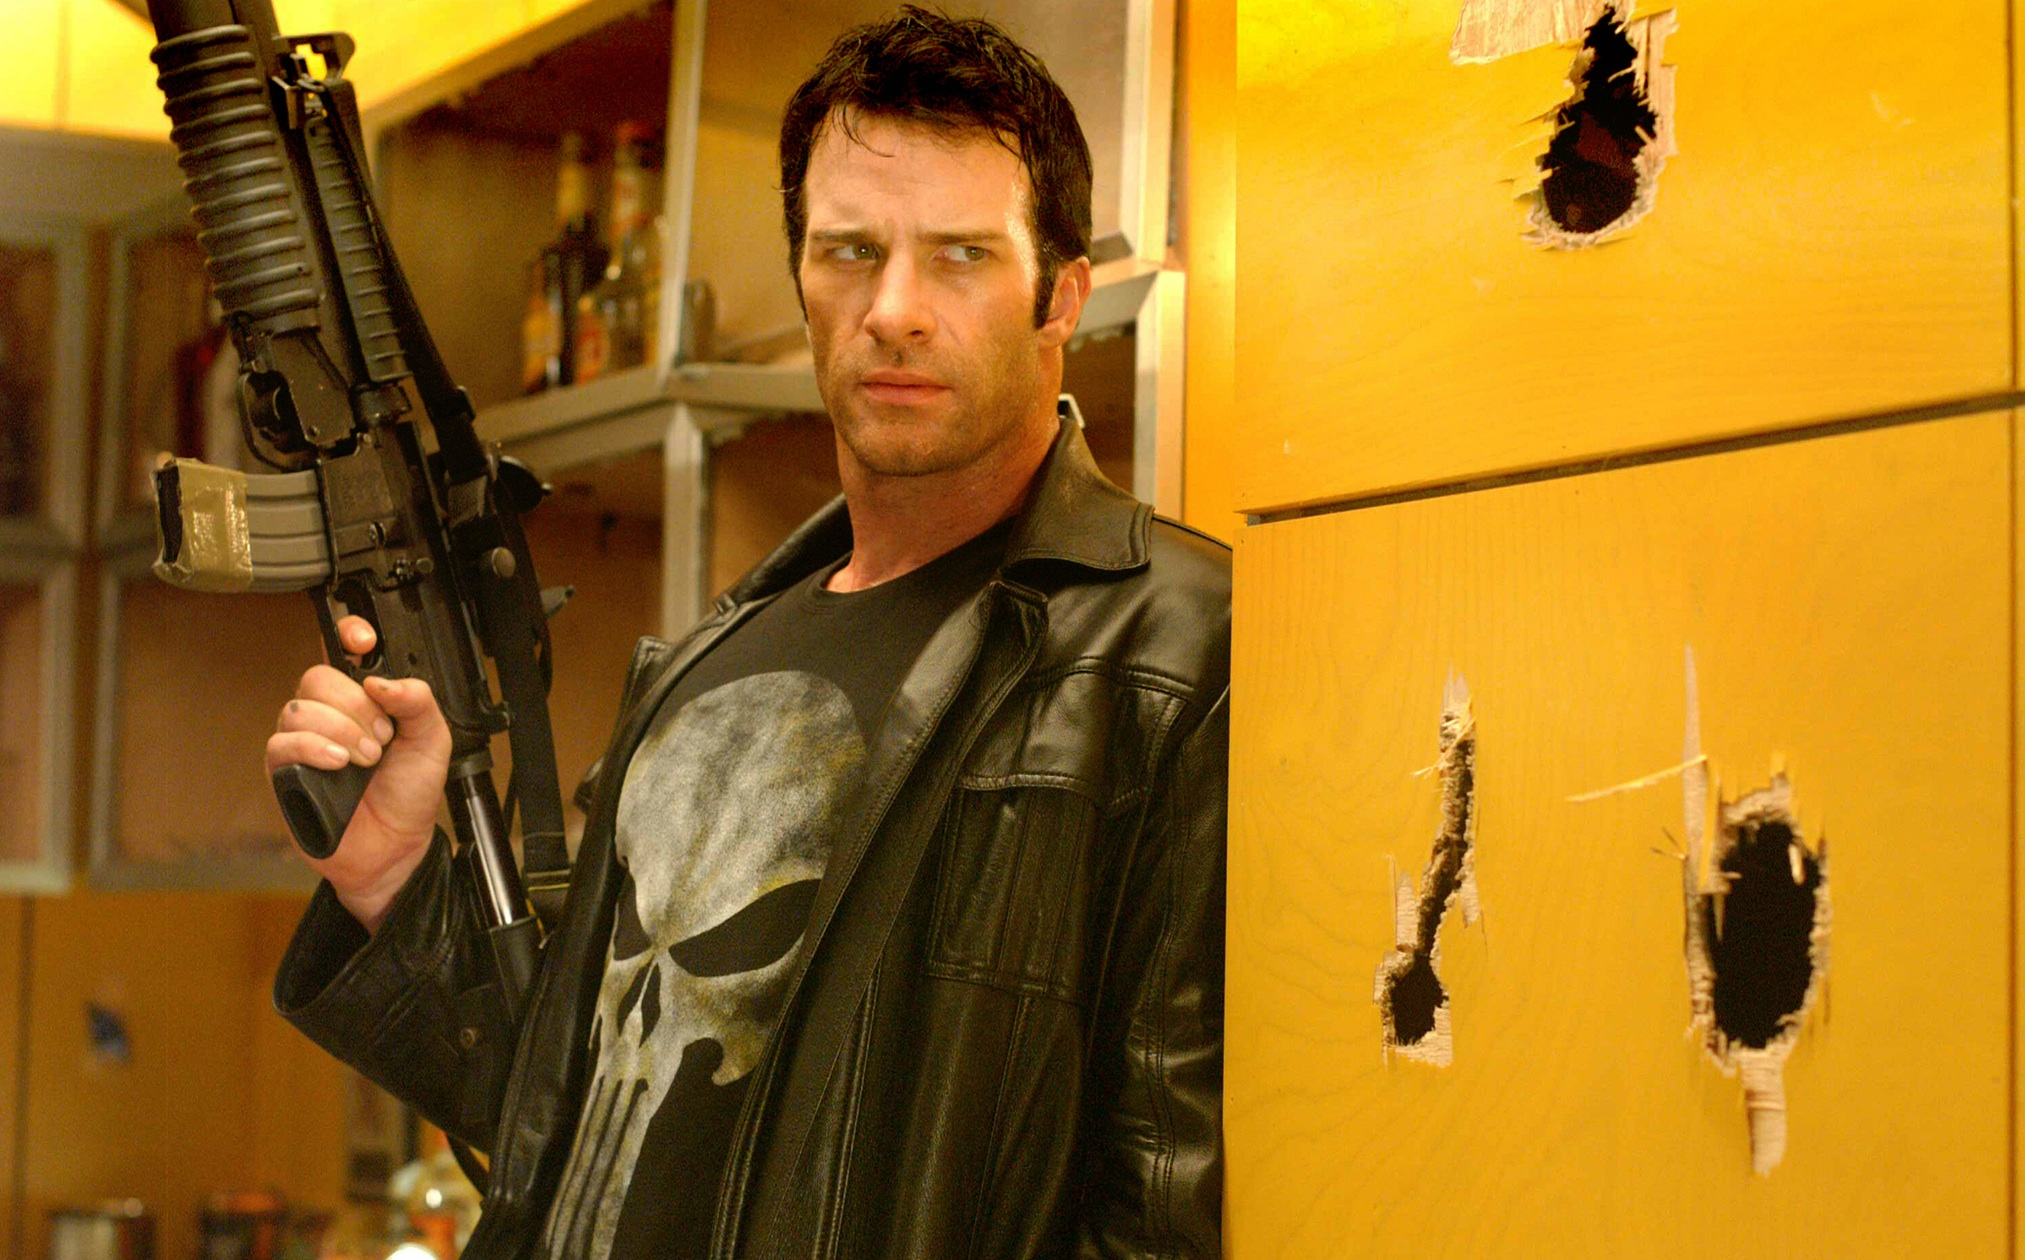 Thomas Jane as Frank Castle in The Punisher (2004)